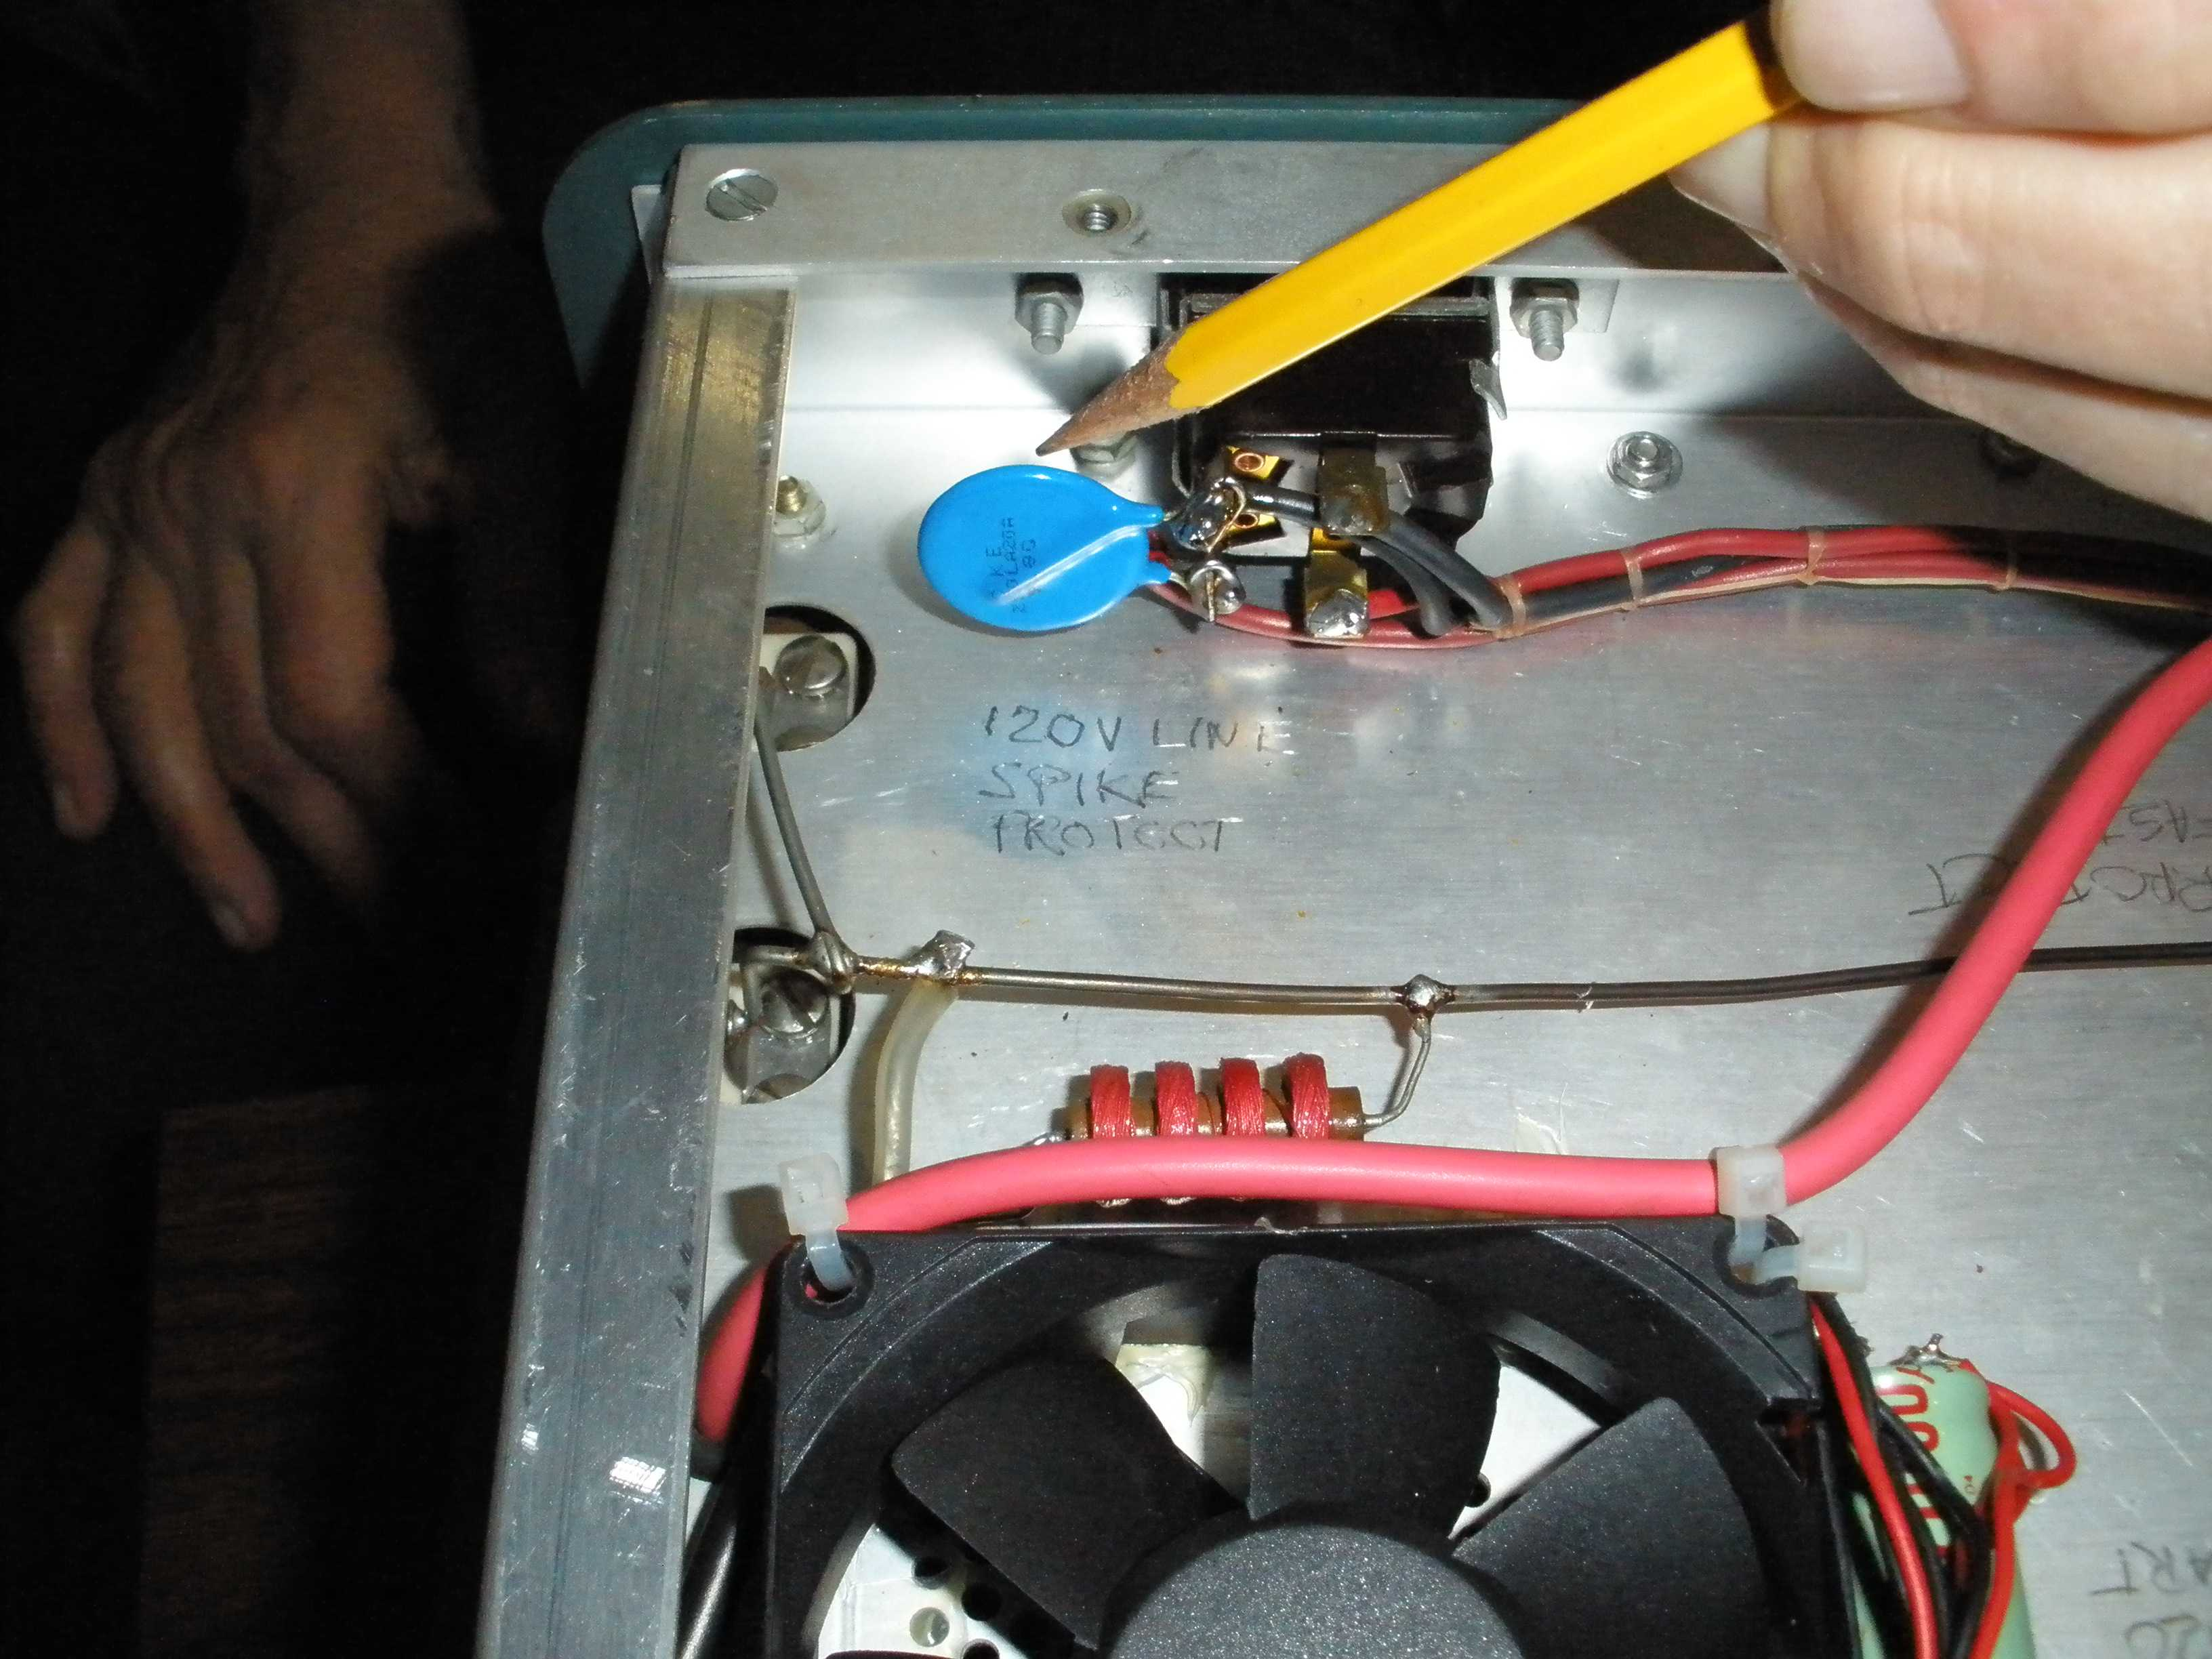 Heathkit SB-200 Repair and Mods: Soft Start, ARC protection, 572B ...